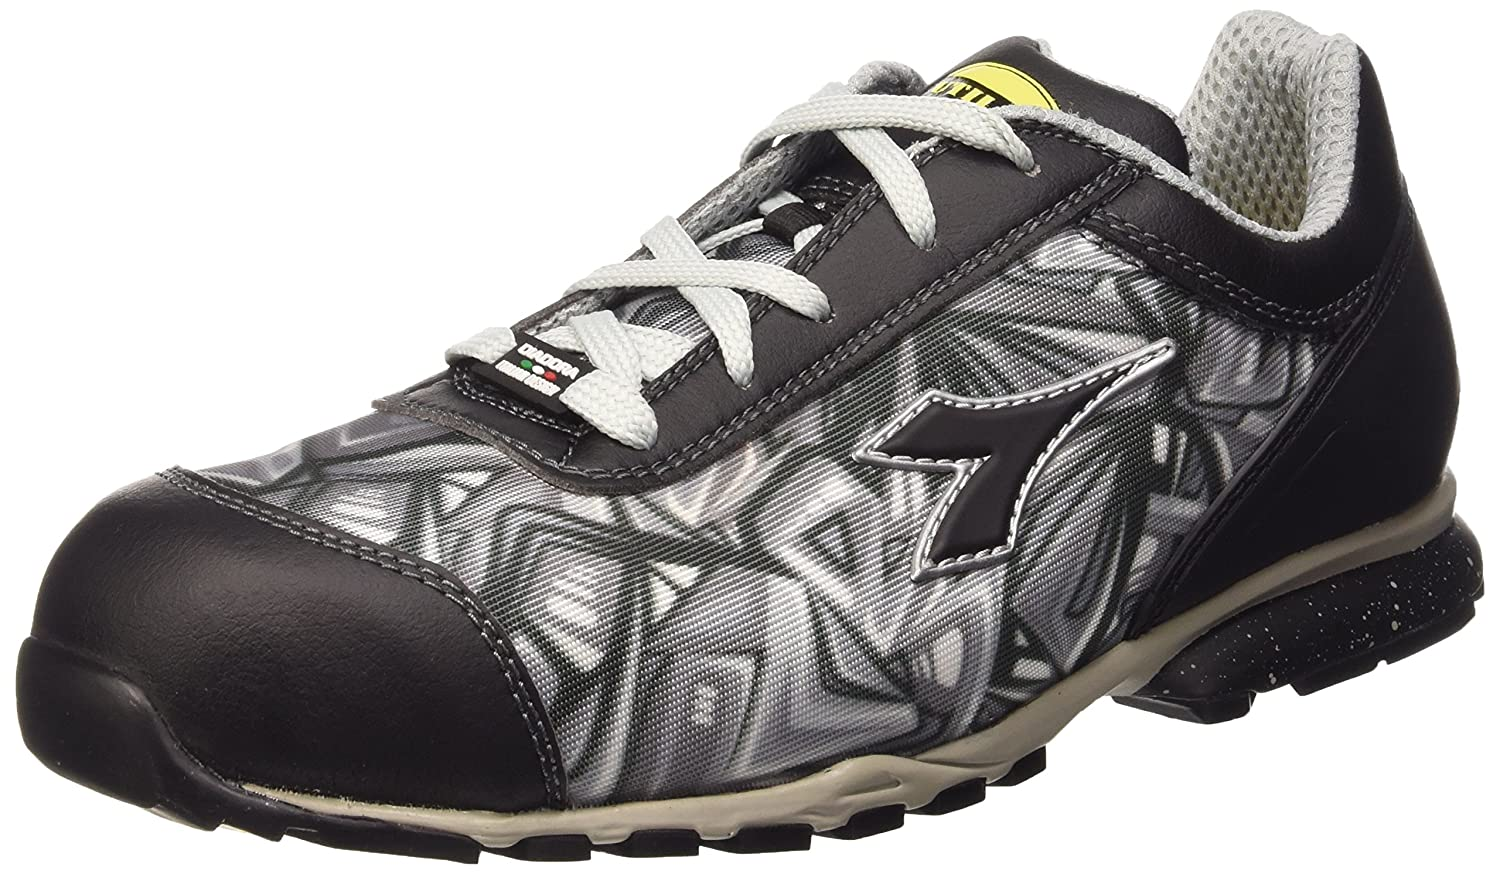 Diadora Adulte Mixte D-399 B001949G88 Textile Low S1p HRO SRC, Chaussures de Sécurité Mixte Adulte Multicolore (C2539 Grigio/Nero) 30bb43c - reprogrammed.space